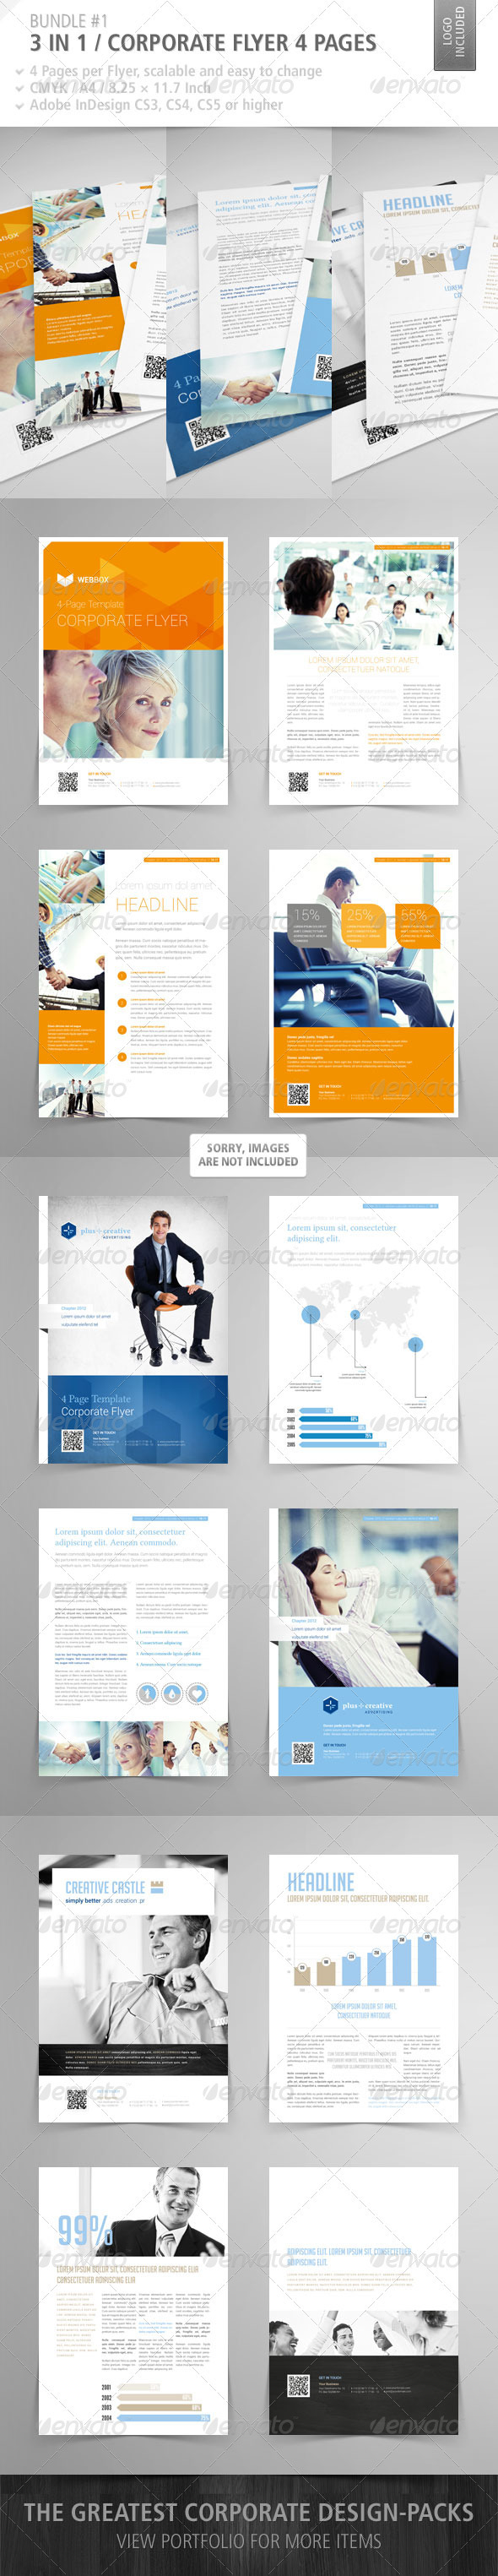 GraphicRiver Corporate Flyer 4 Pages Bundle #1 3282101